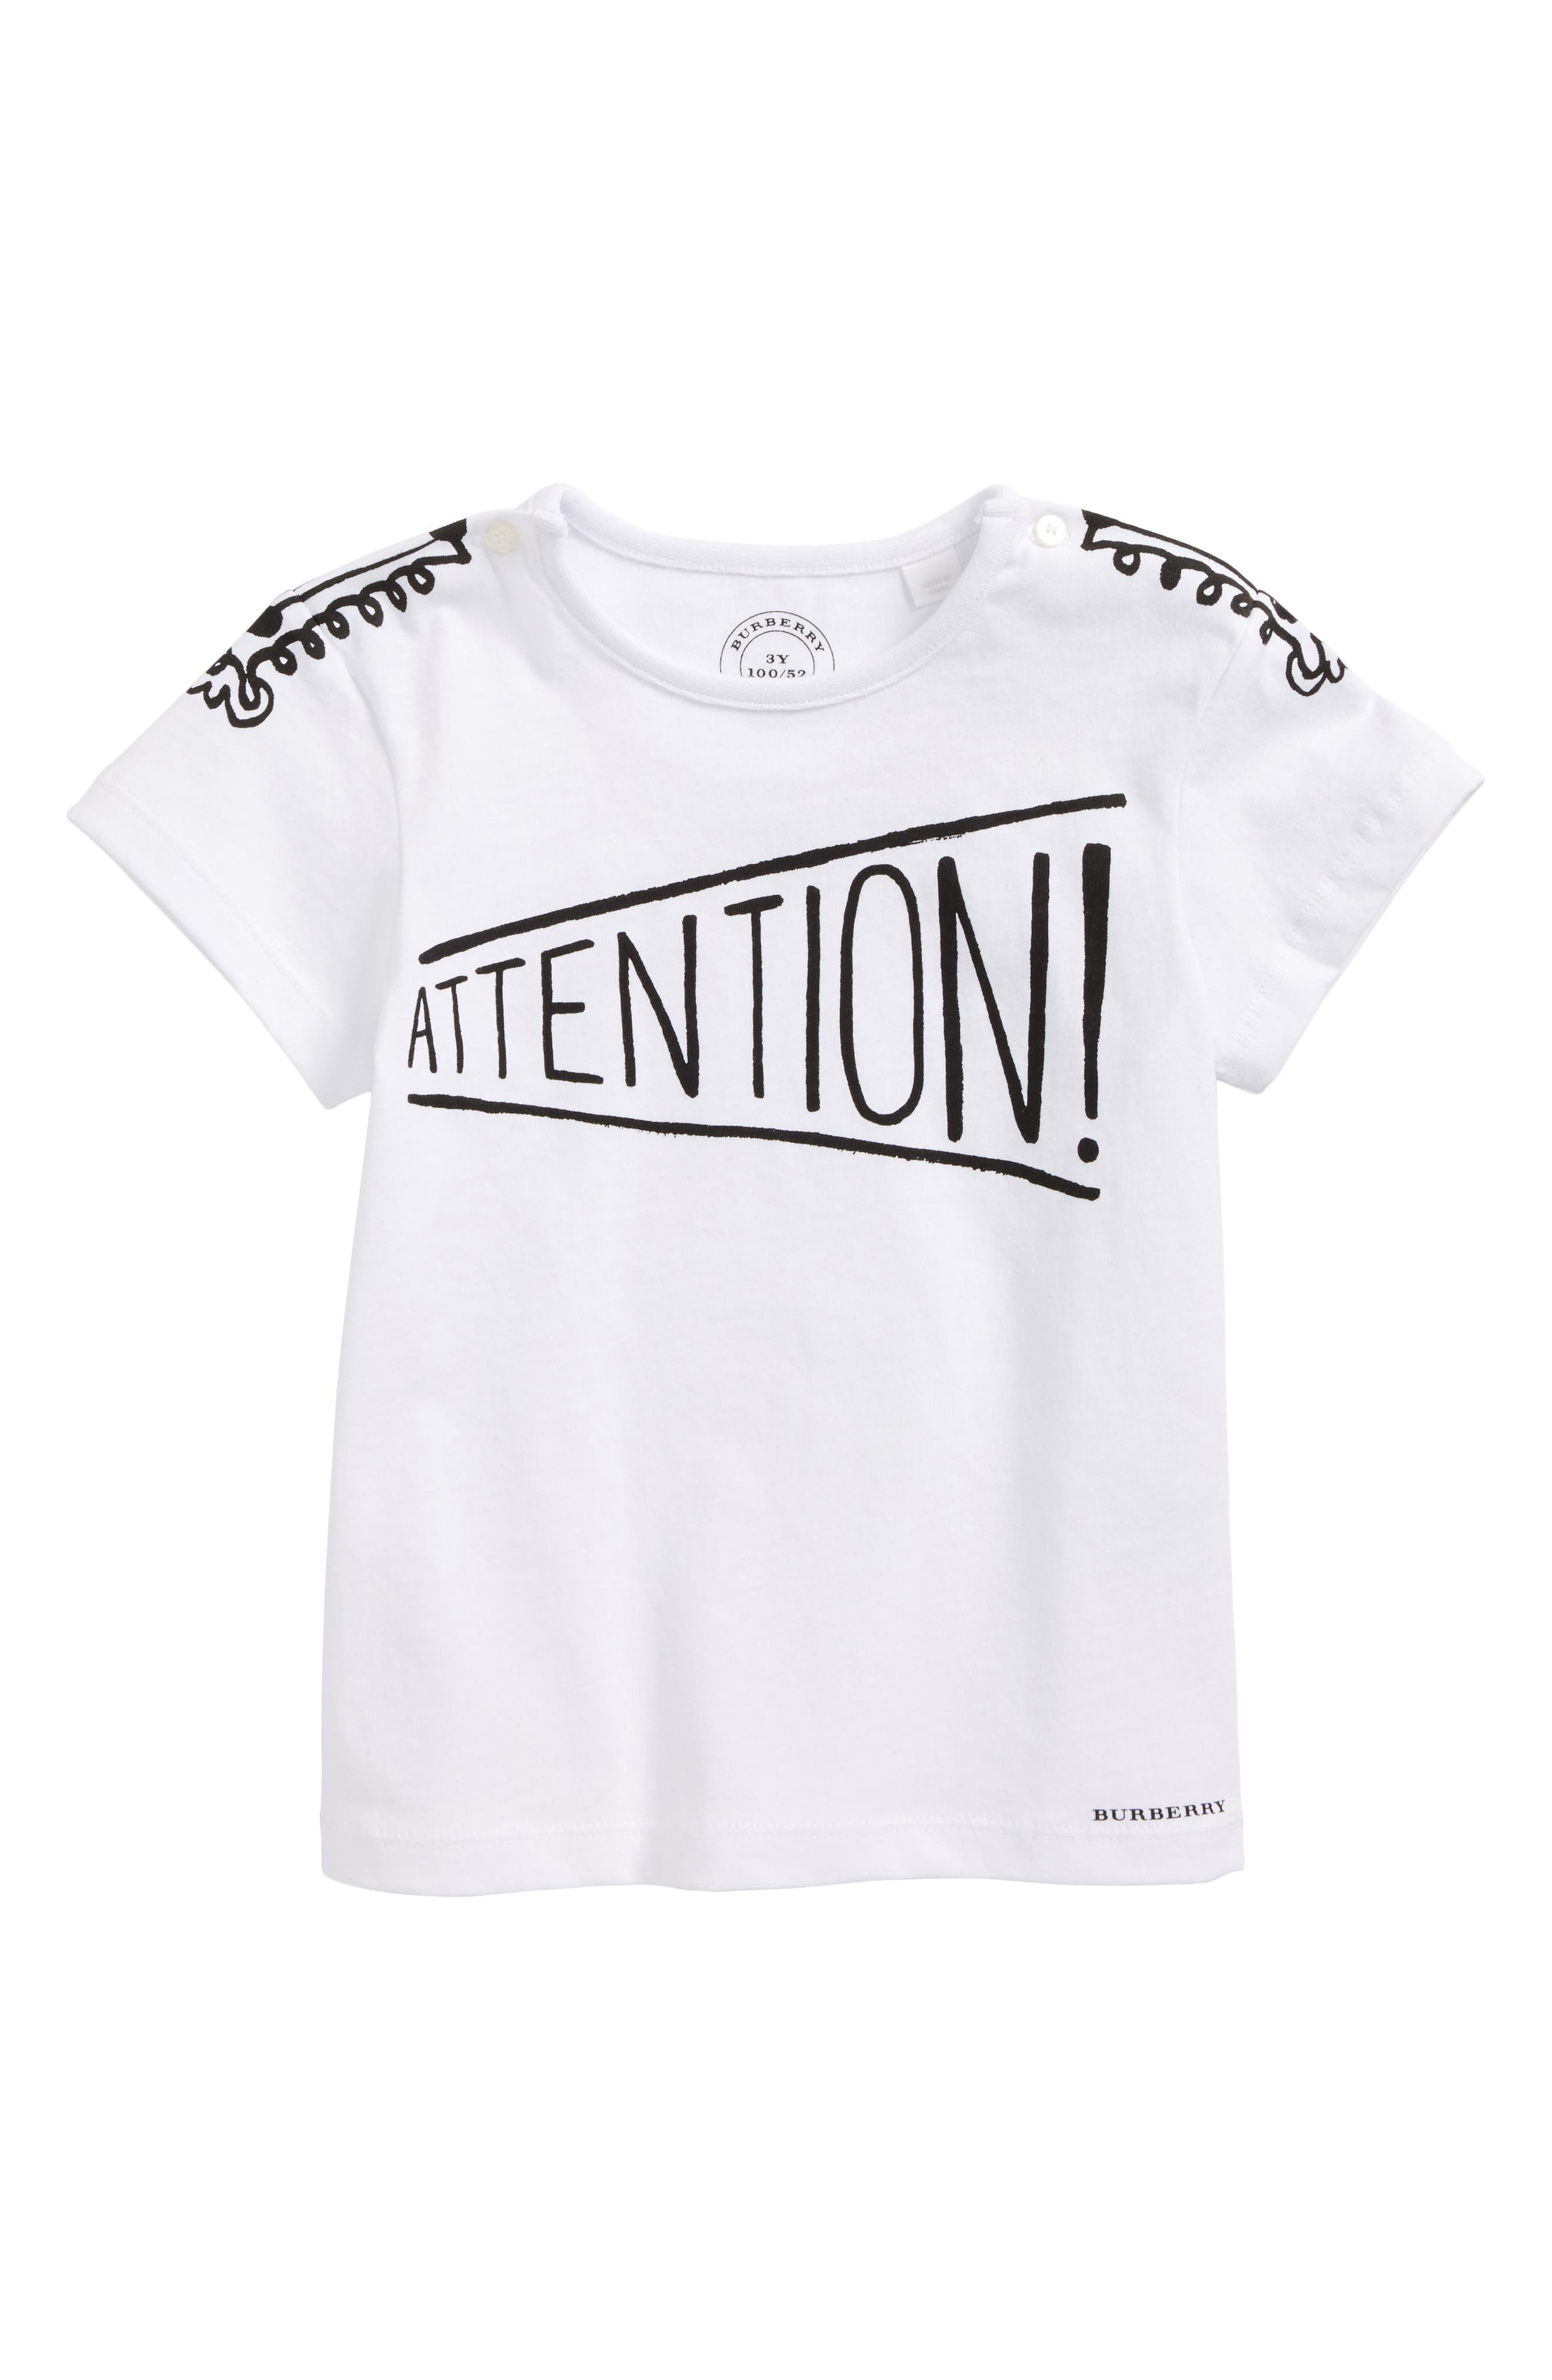 Alternate Image 1 Selected - Burberry Attention T-Shirt (Toddler Boys)